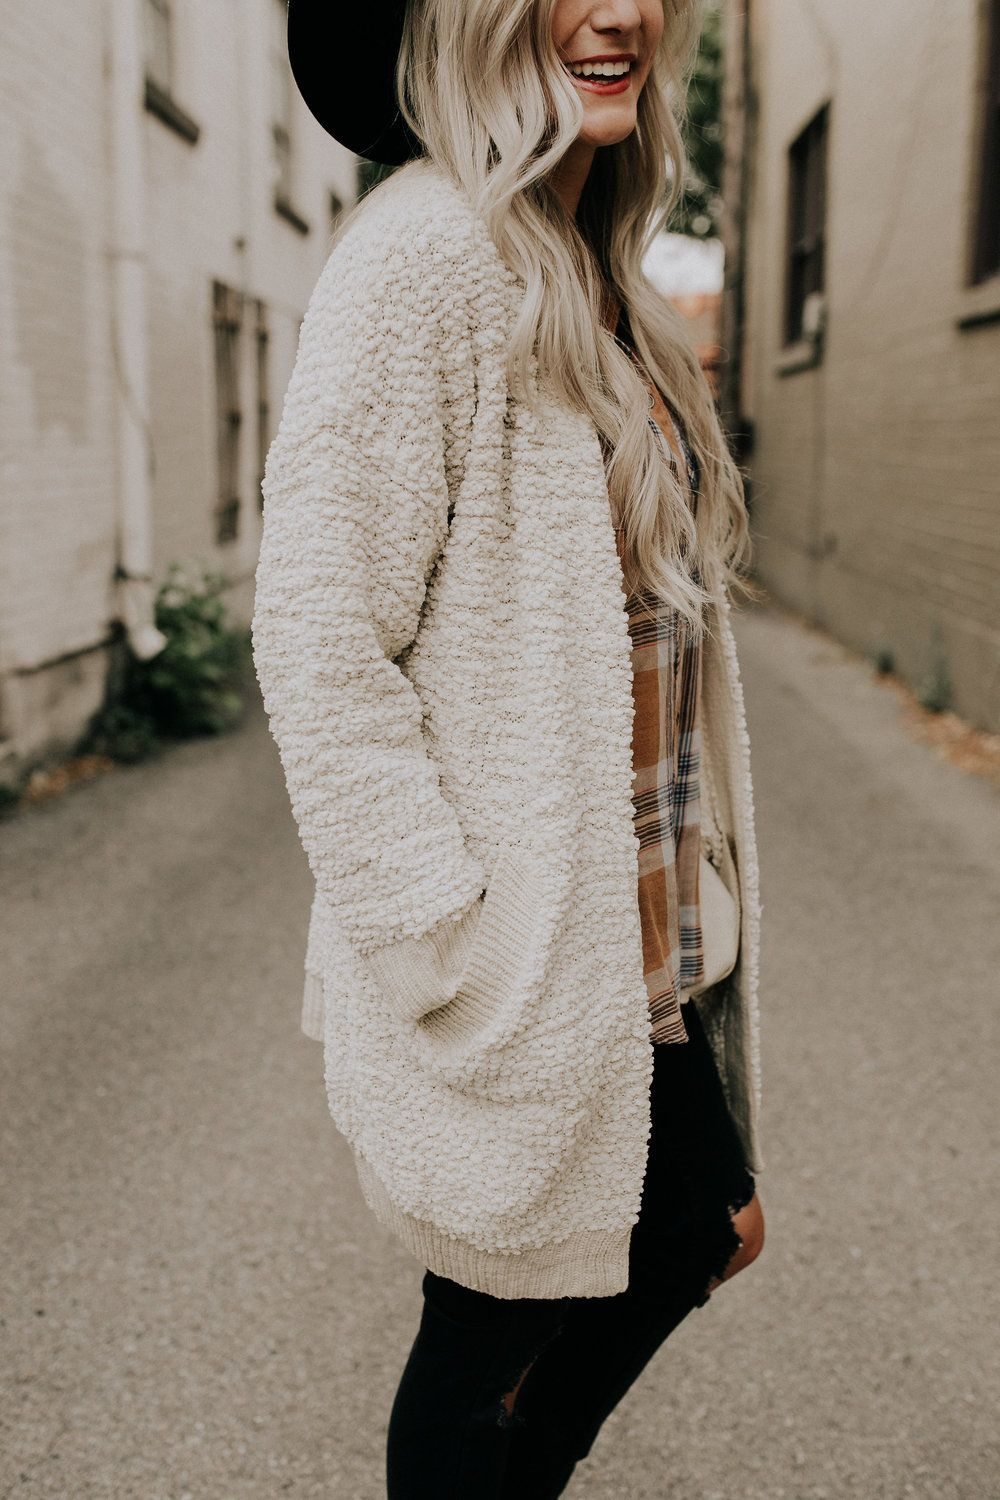 Texture Knit Cream Cardigan Long Sleeve   Dropped Shoulder Seam ...